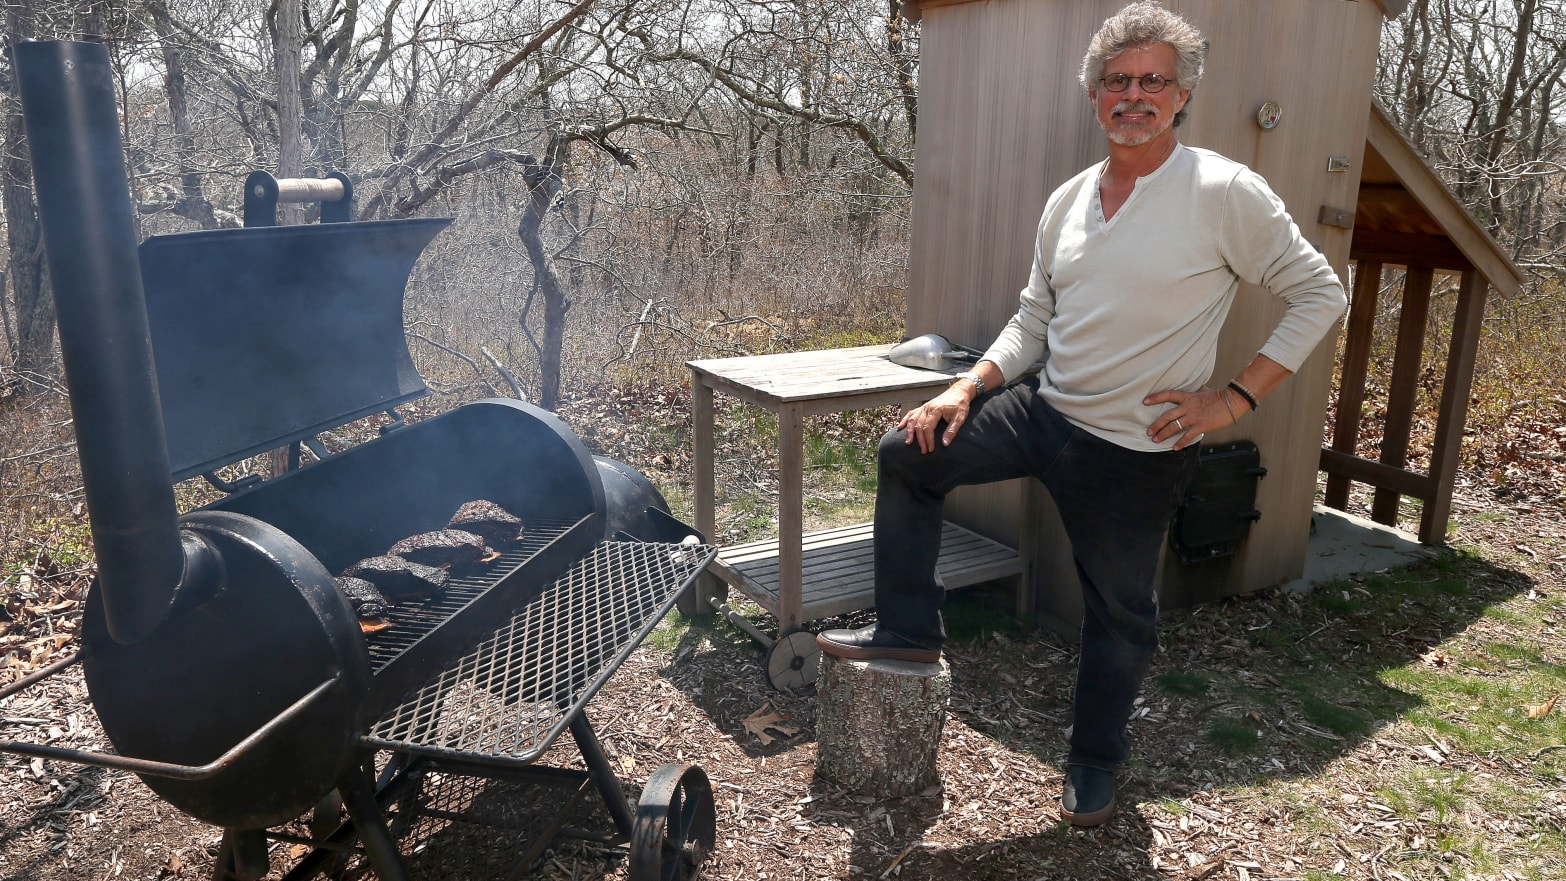 Steven Raichlen poses while cooking Oak smoked big bad beef ribs